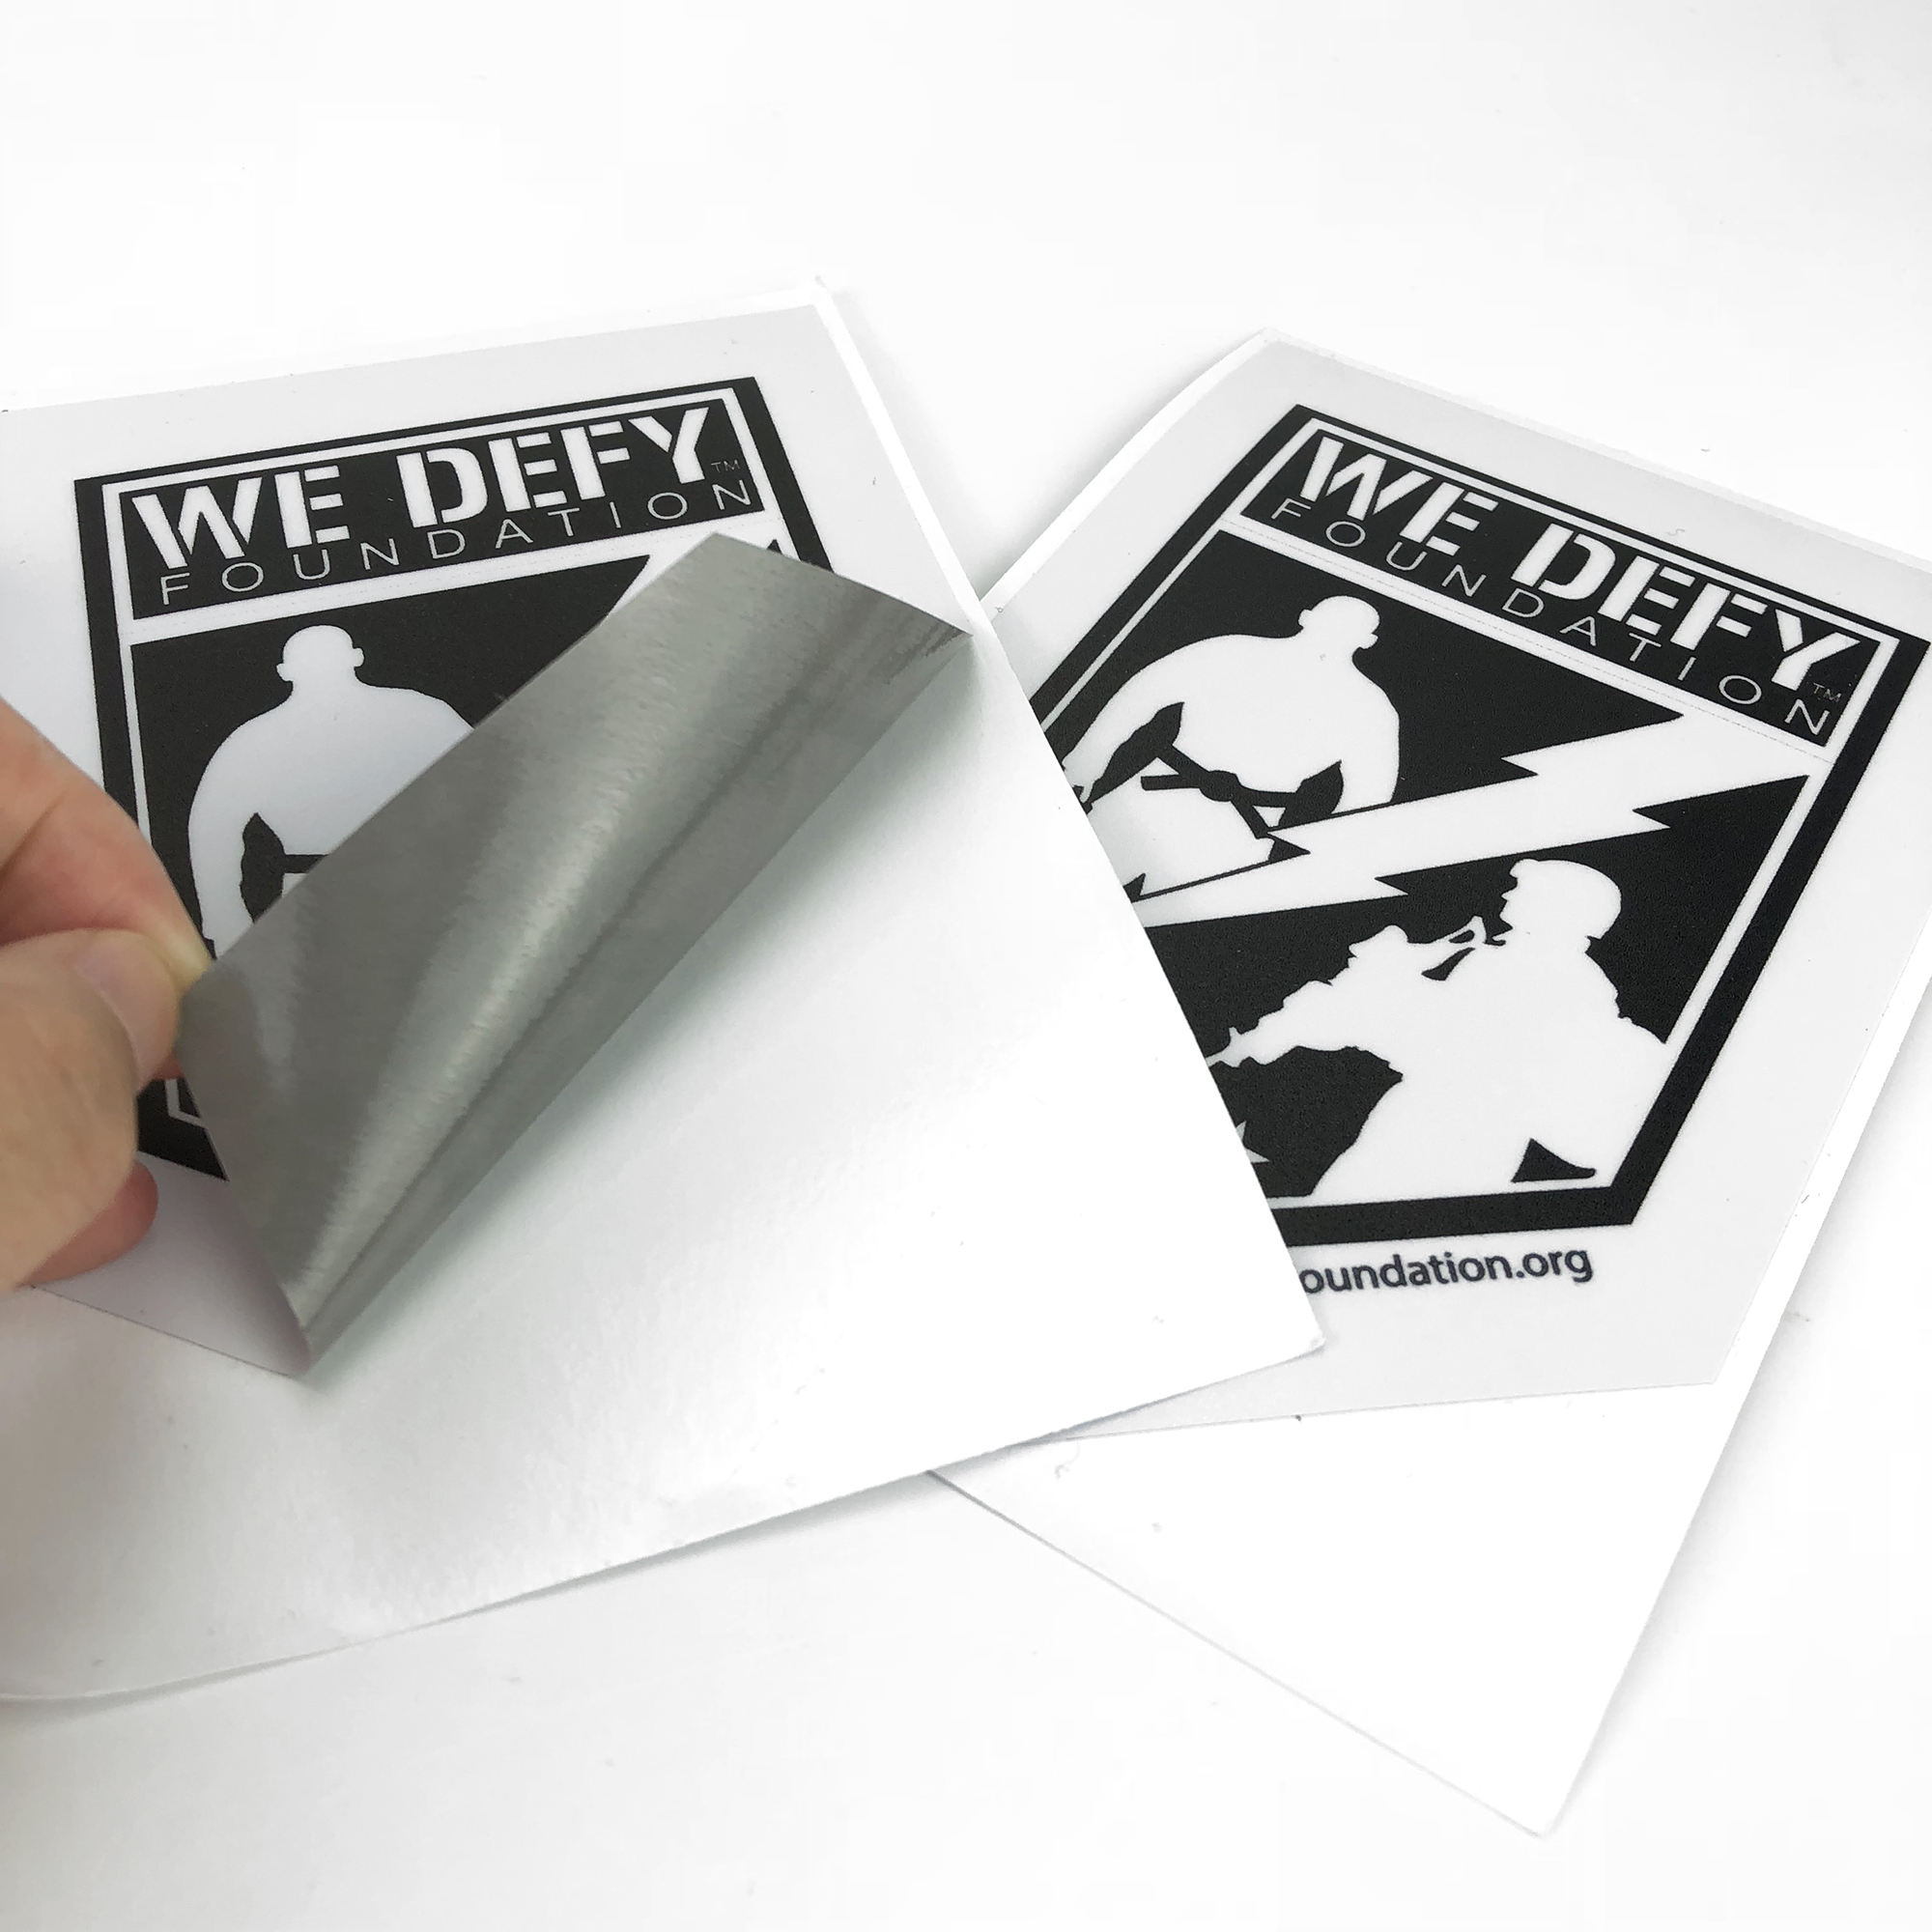 Vinyl Sticker / Clear PVC Sticker / Window Cling Decal / CAR sticker in WindowCustom Full Printed any size,color and design